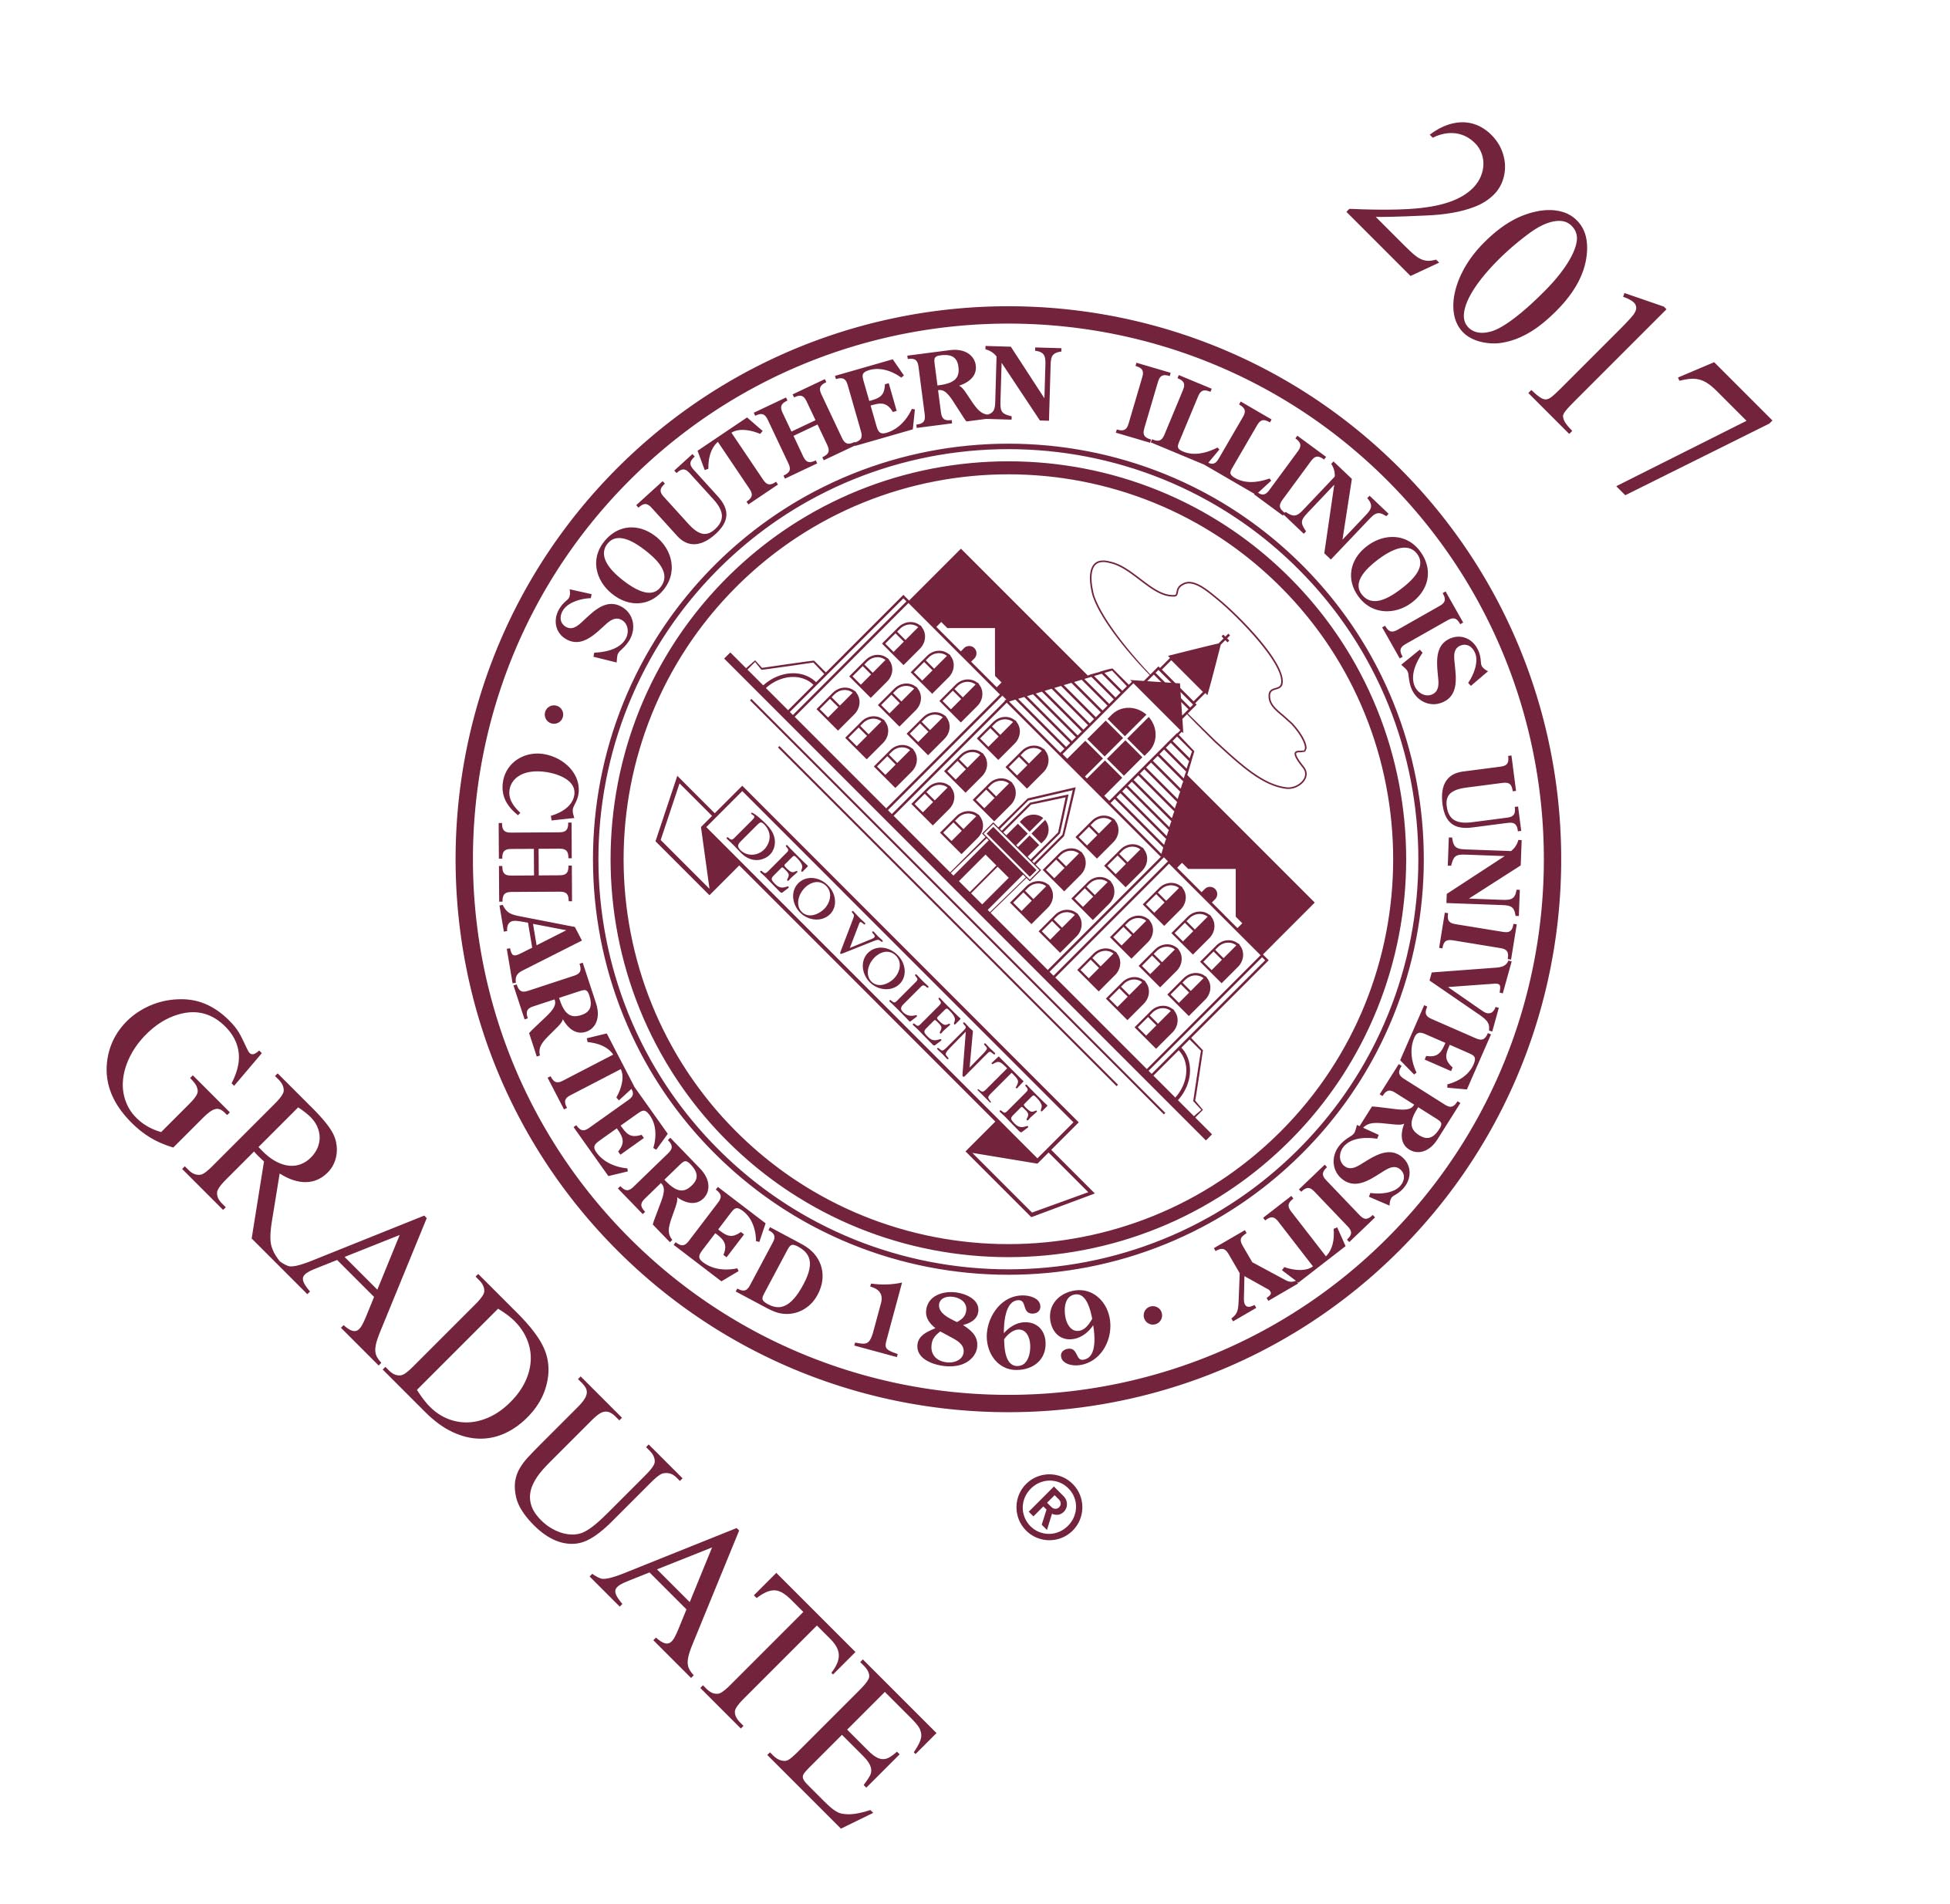 Alternative Image for the SOUTHERN ILLINOIS UNIVERSITY SEAL GRADUATION CAP TOPPER product